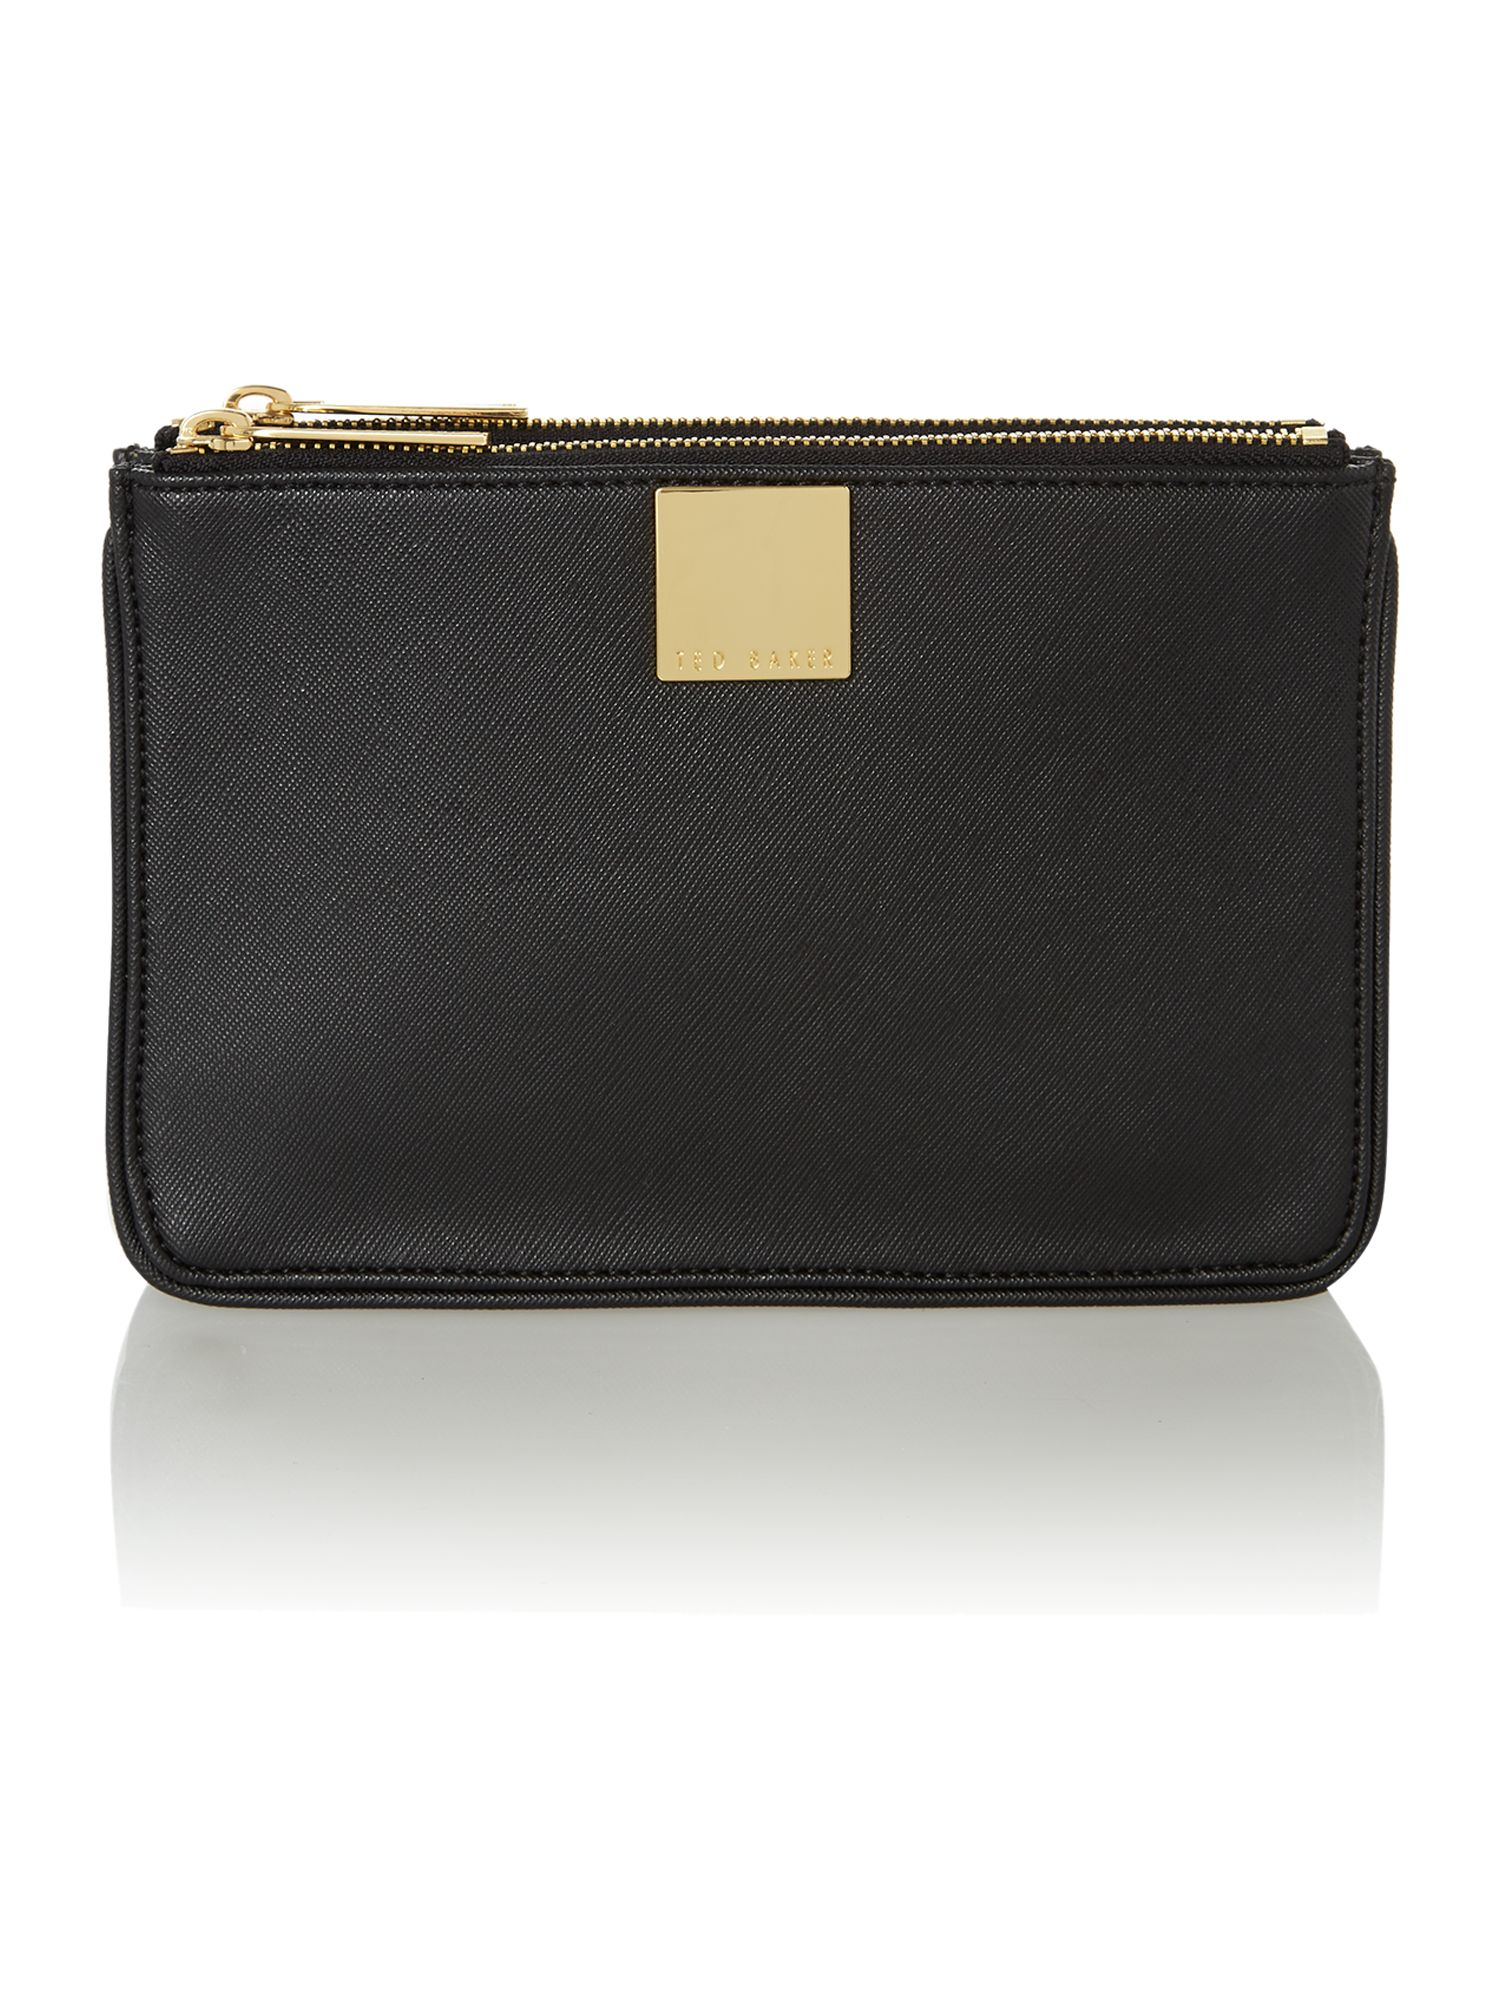 Black small saffiano cross body bag